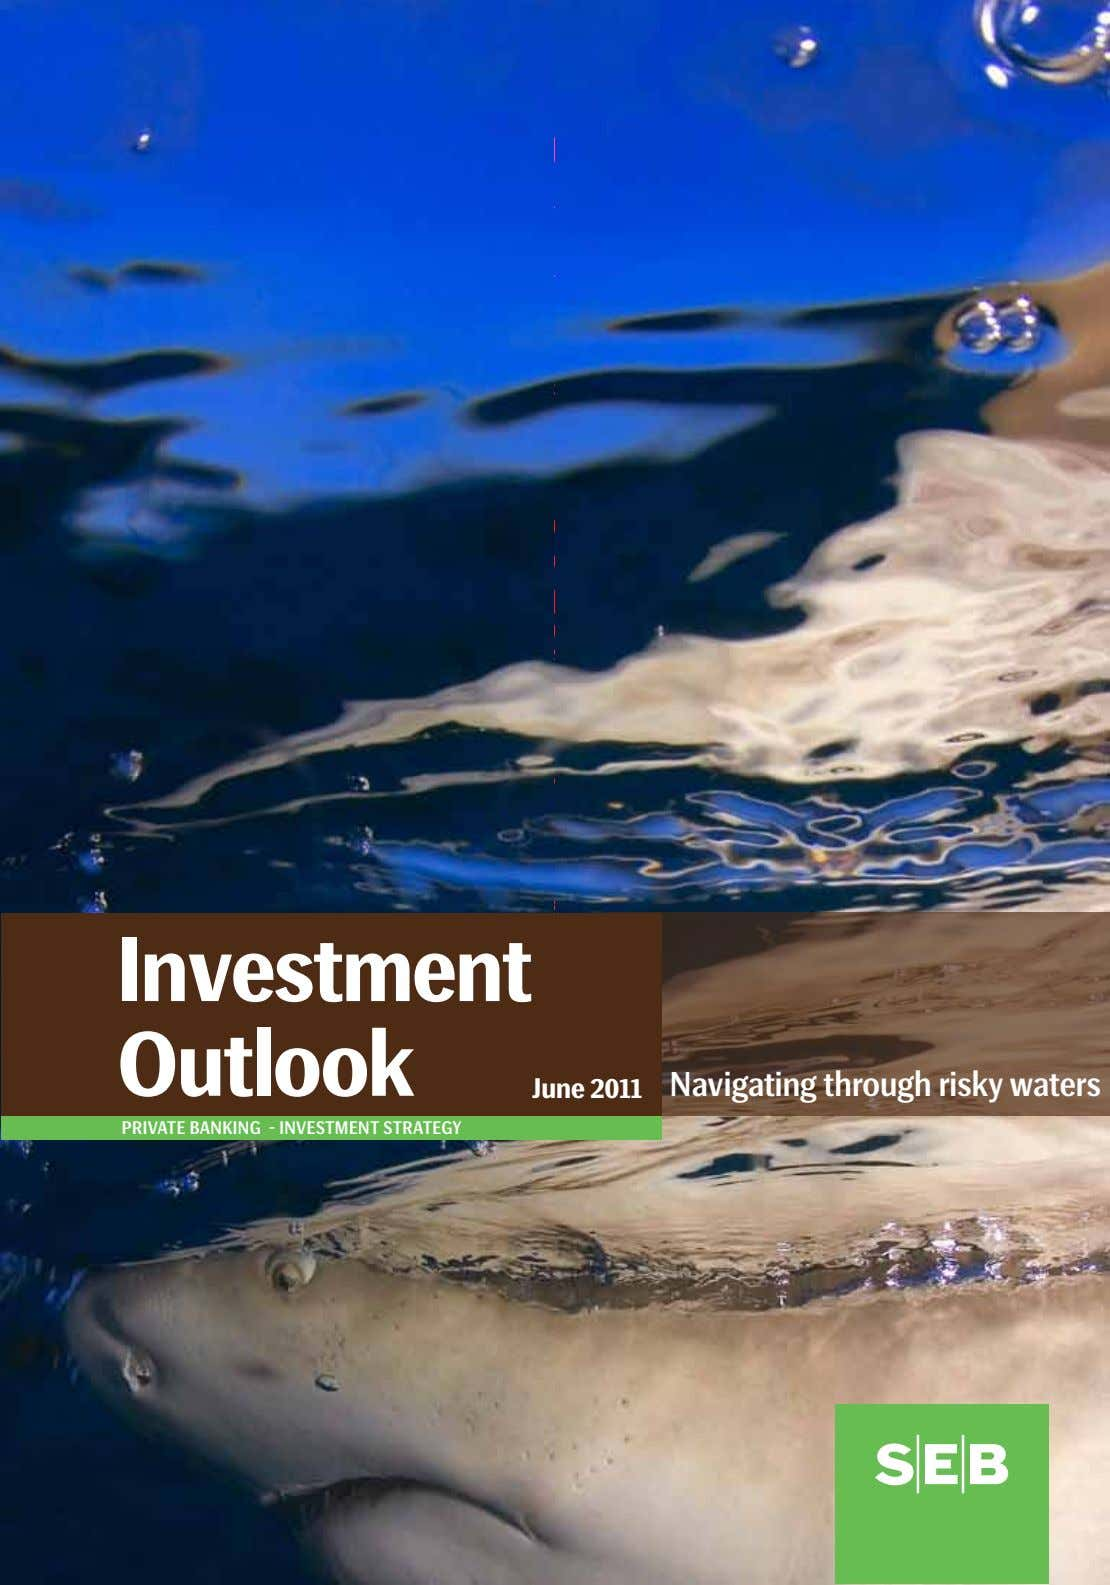 Investment Outlook June 2011 navigating through risky waters private banking - investment strategy